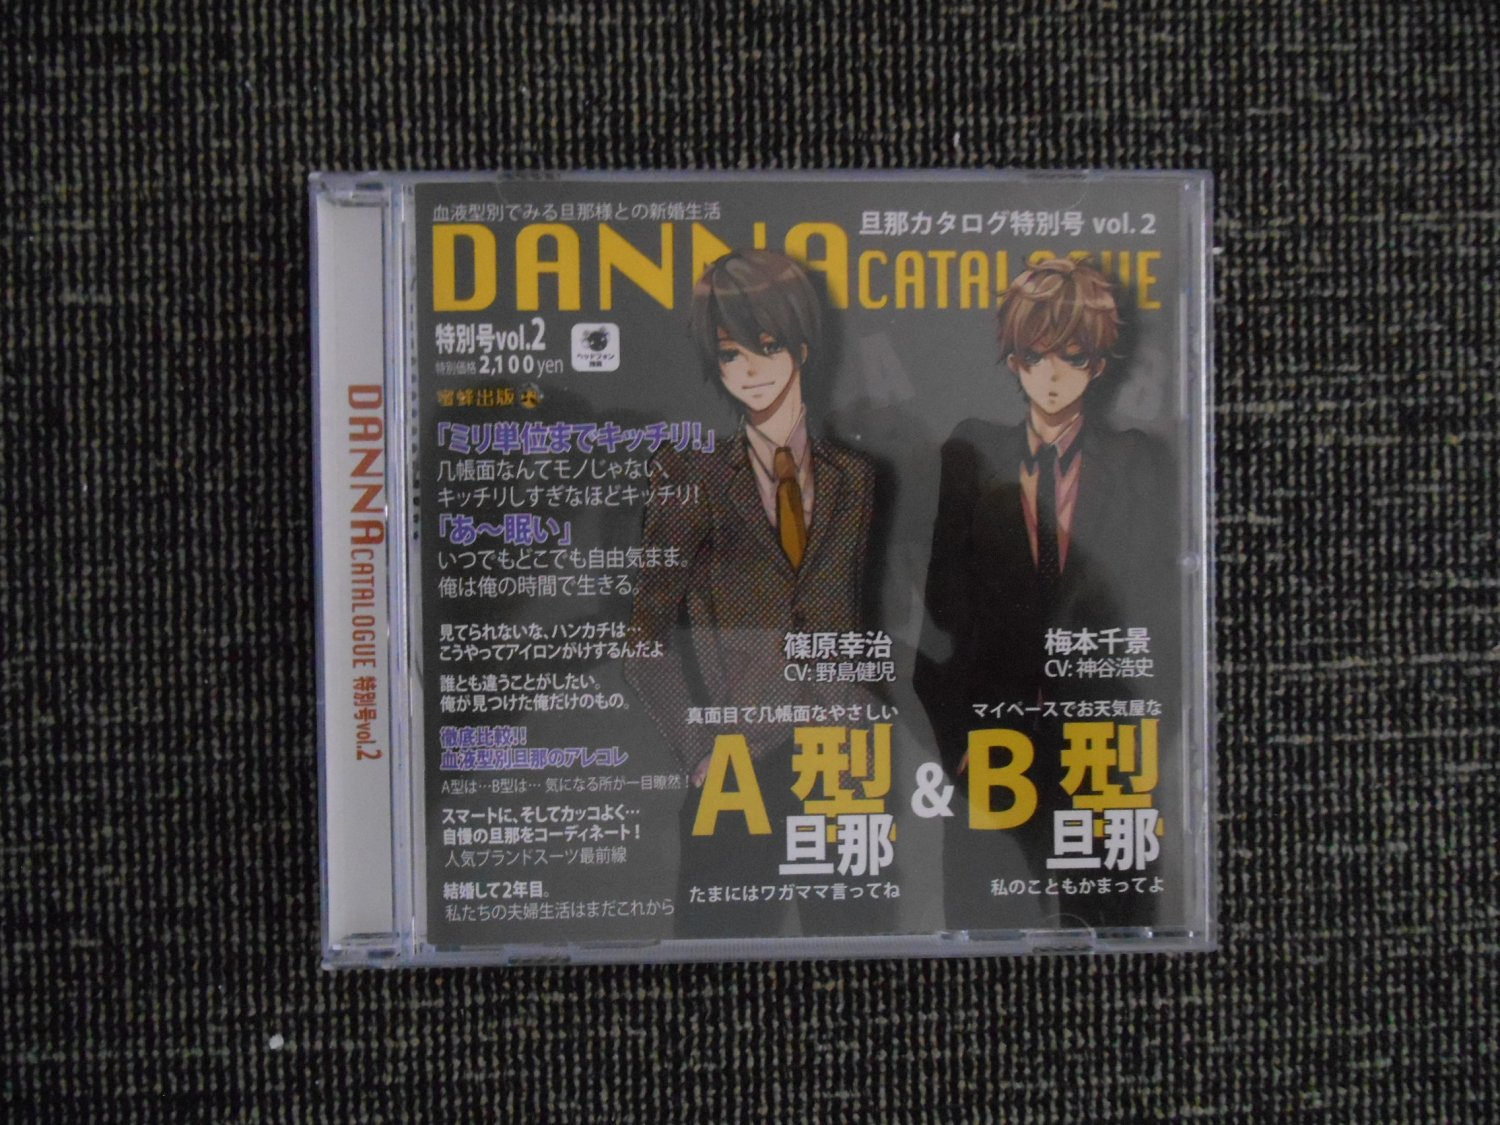 Danna Catalogue Bloodtype Series Vol.02 - Type A Vs. B blood types � honeybee � (Drama CD)